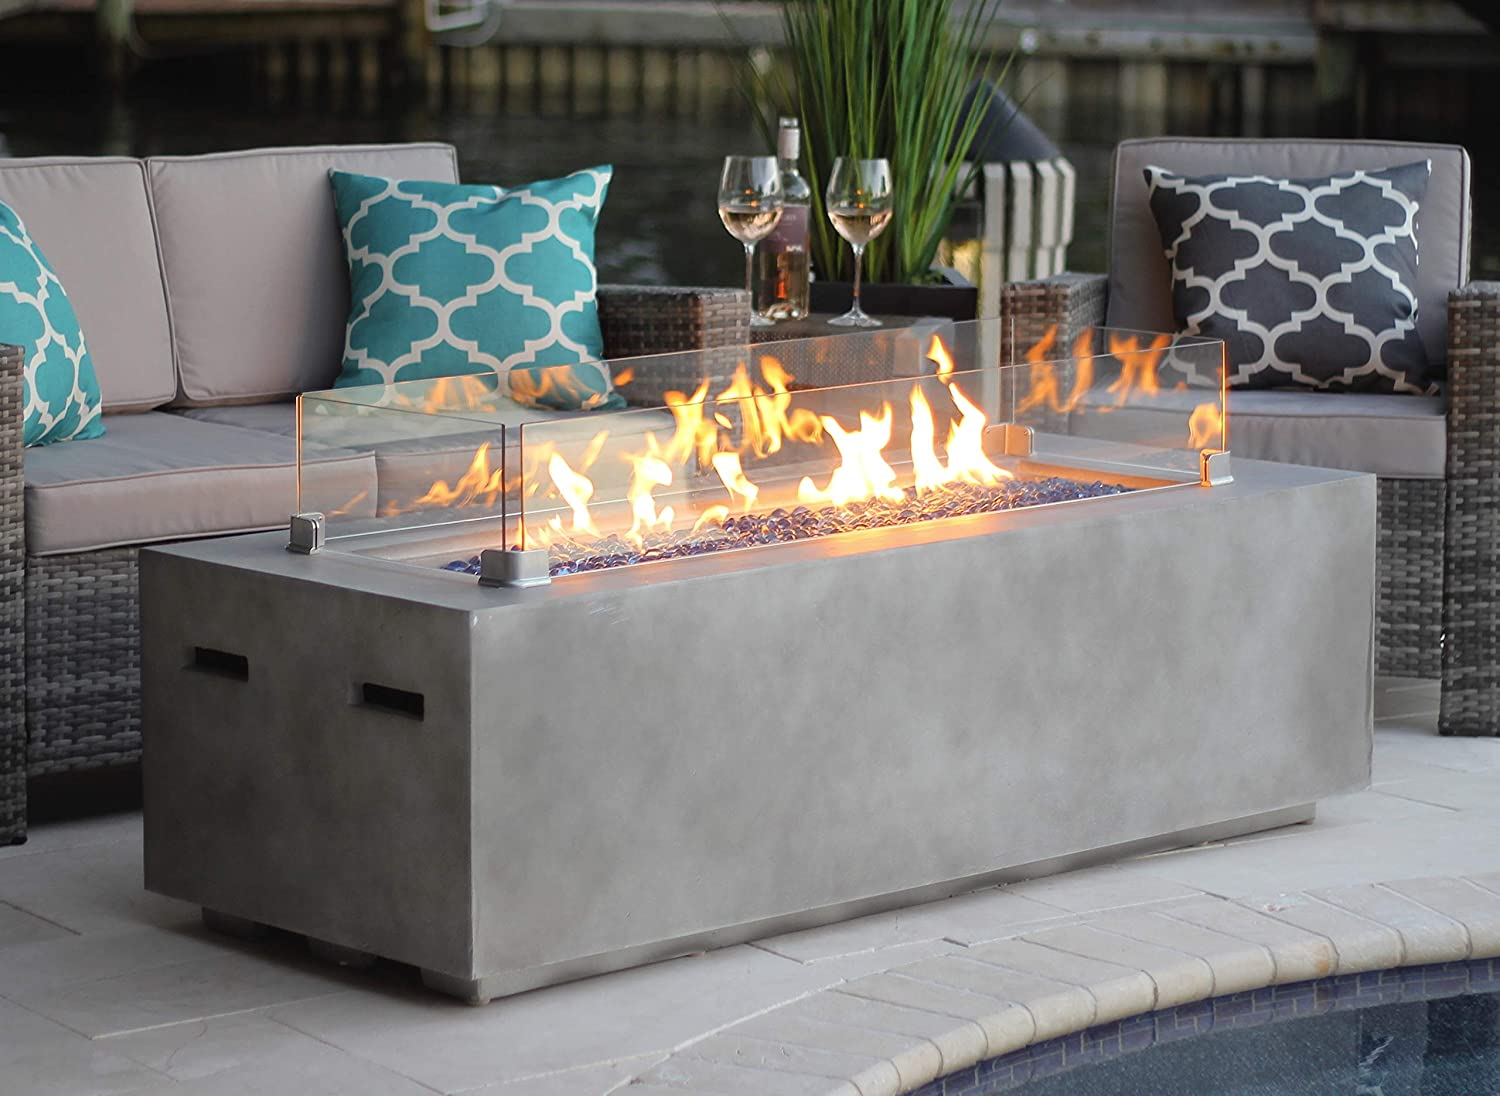 AKOYA Outdoor Essentials AOE60501AA-Onyx Black 60 Rectangular Modern Concrete Fire Pit Table with Glass Guard and Crystals, Onyx